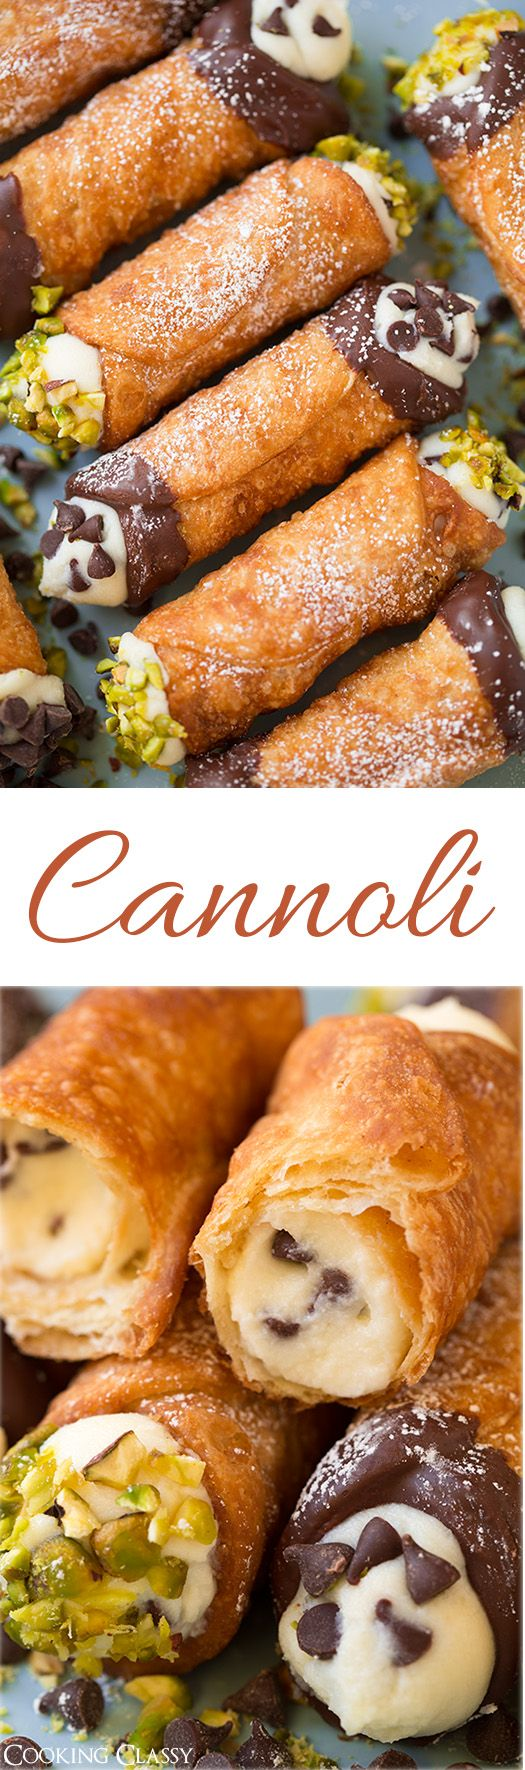 Cannoli (shell and filling recipes) ~ These are seriously dreamy... Perfectly crisp shell and deliciously creamy filling. Just like the ones from Italian bakeries. Step by step photos included for shells.